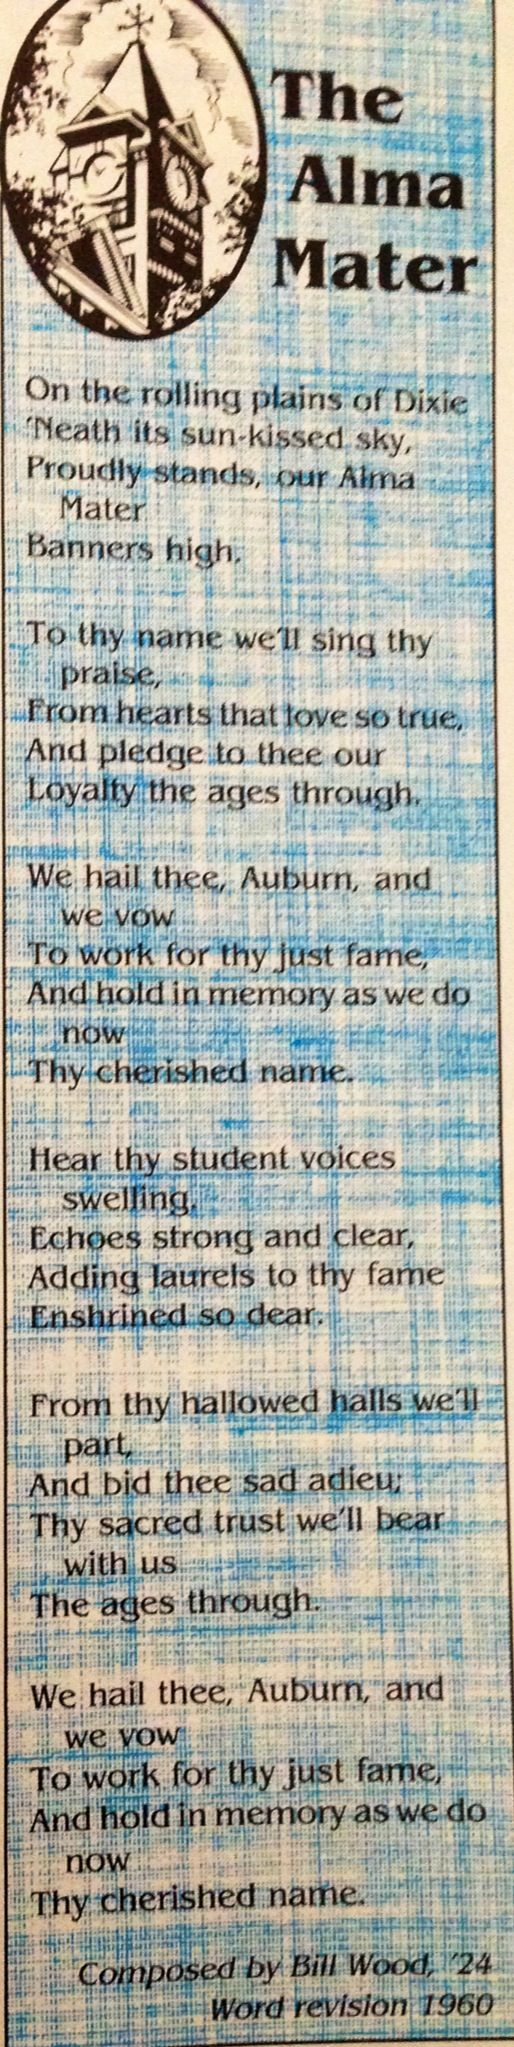 My Alma Mater. Auburn University college of education class of '92.